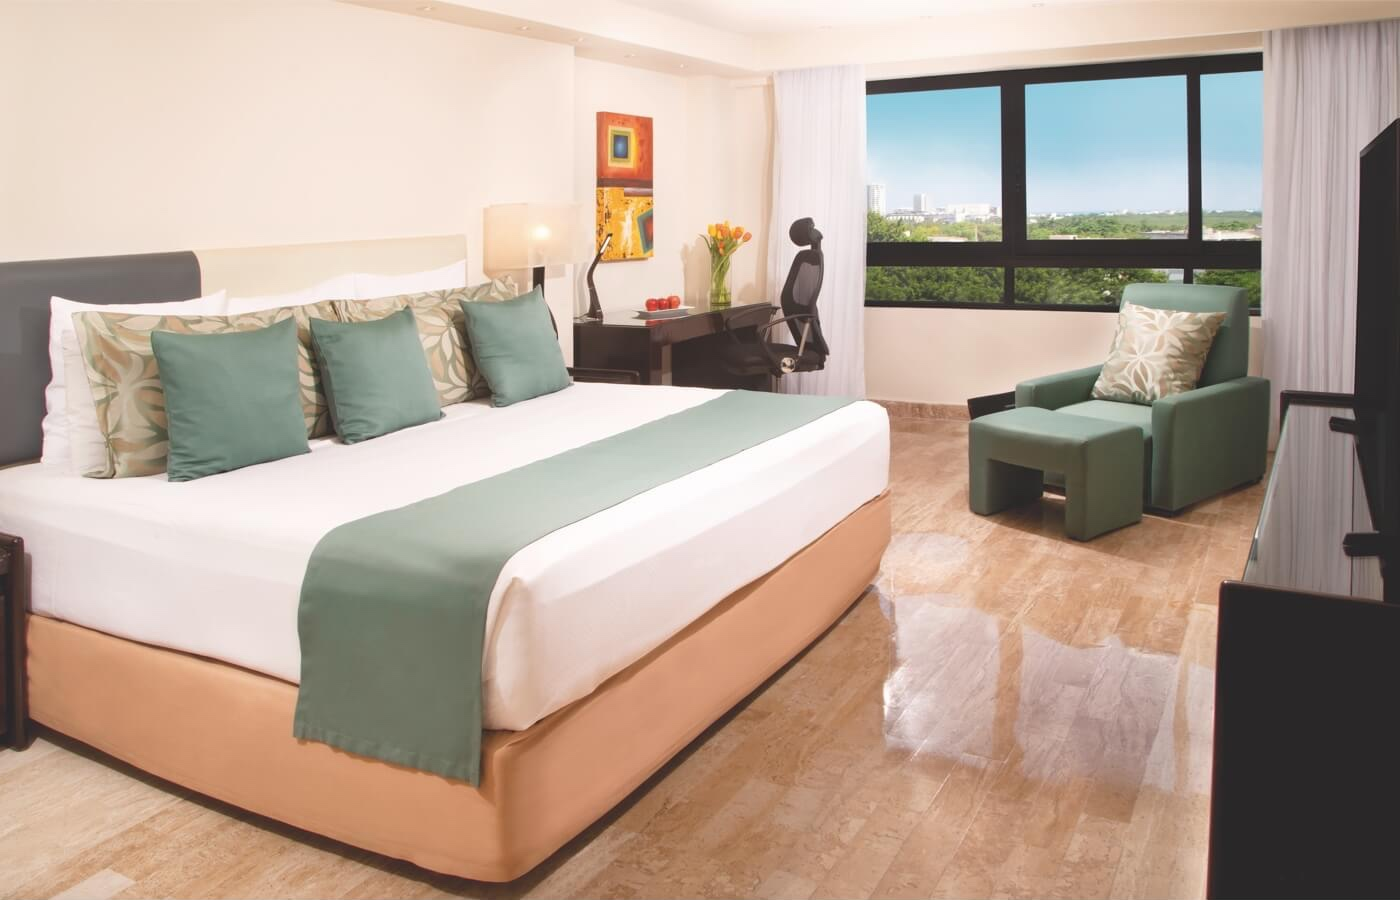 Room with King Size bed and window with beautiful view in Smart Cancun by Oasis Hotel